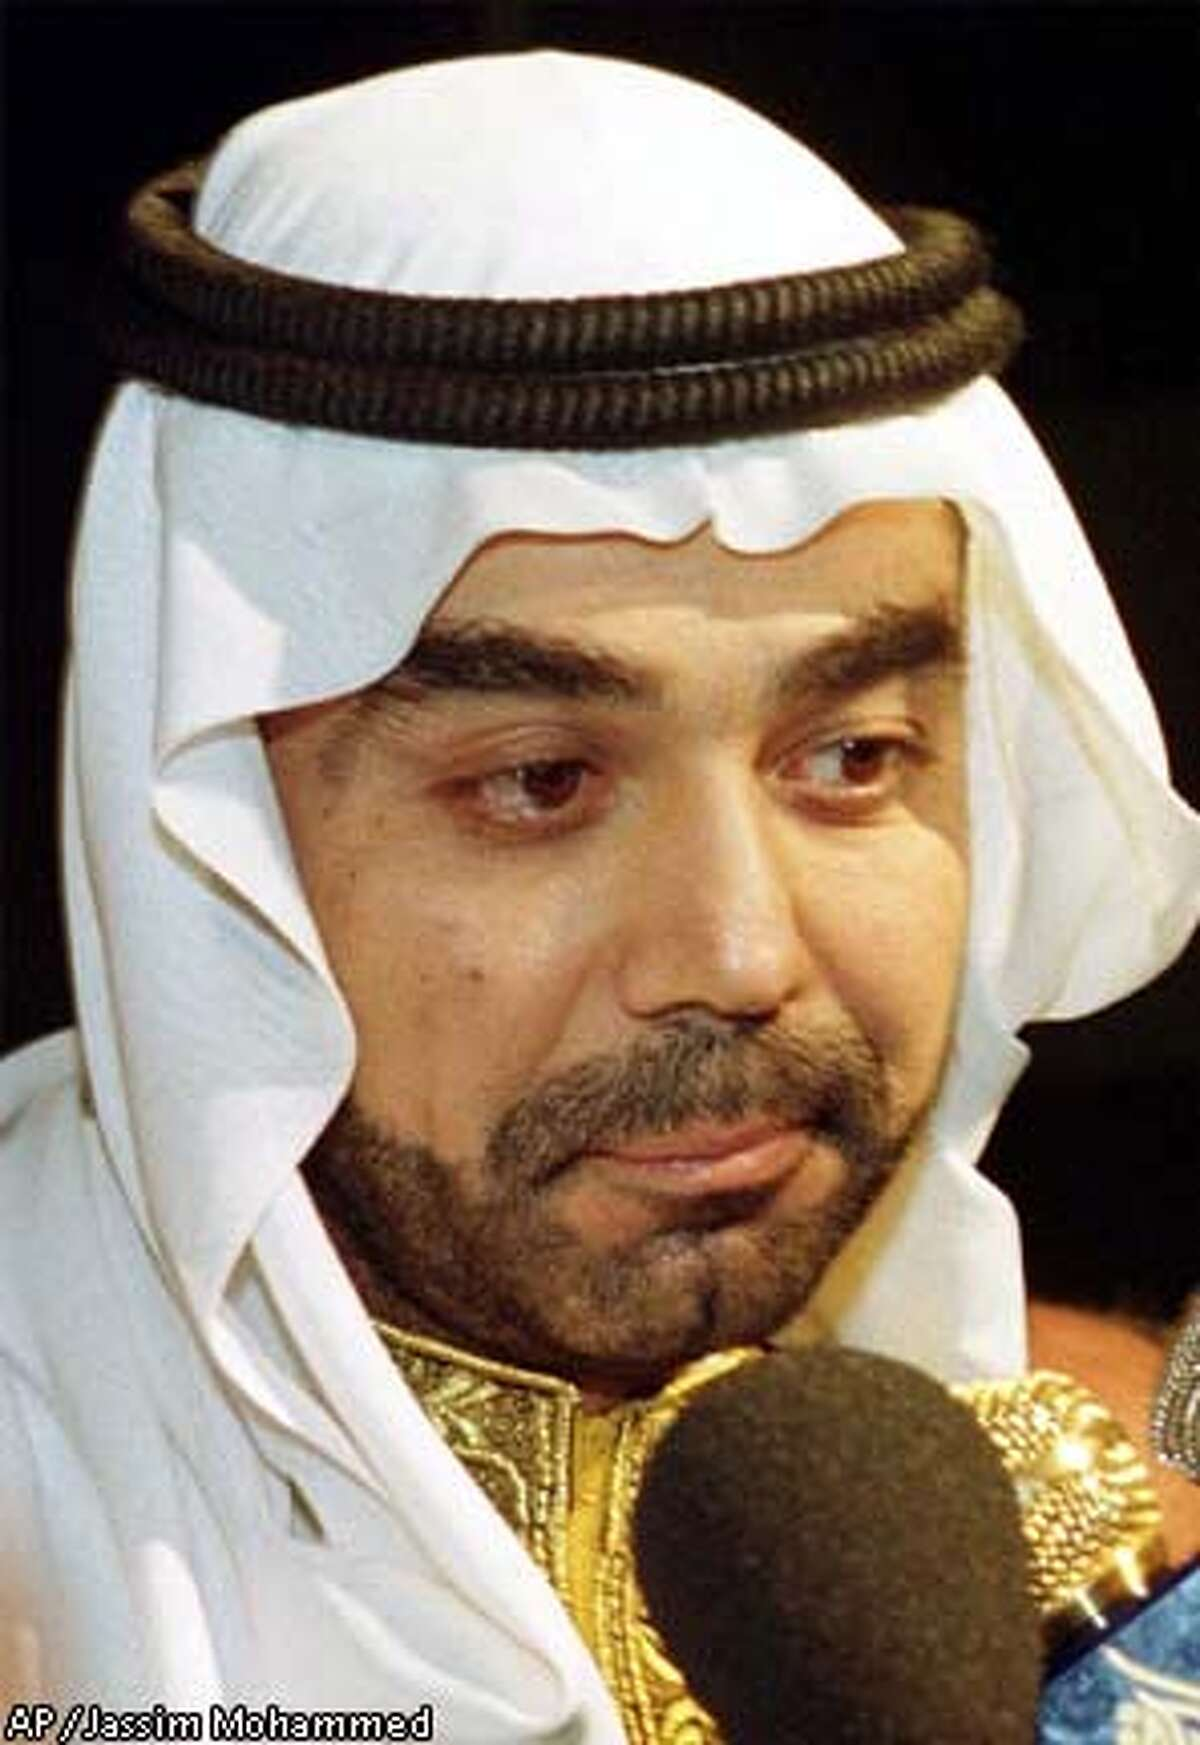 ** FILE** Odai, eldest son of Iraqi President Saddam Hussein, is seen in Baghdad on Monday, March 27, 2000. The IOC wants Iraq's Olympic committee replaced by a group with no links to torture and other abuses that took place under Saddam Hussein. The IOC's ethics commission made the recommendations after investigating accusations that the Iraqi committee, led by Saddam's son Odai, brutalized and jailed athletes.(AP Photo/Jassim Mohammed)